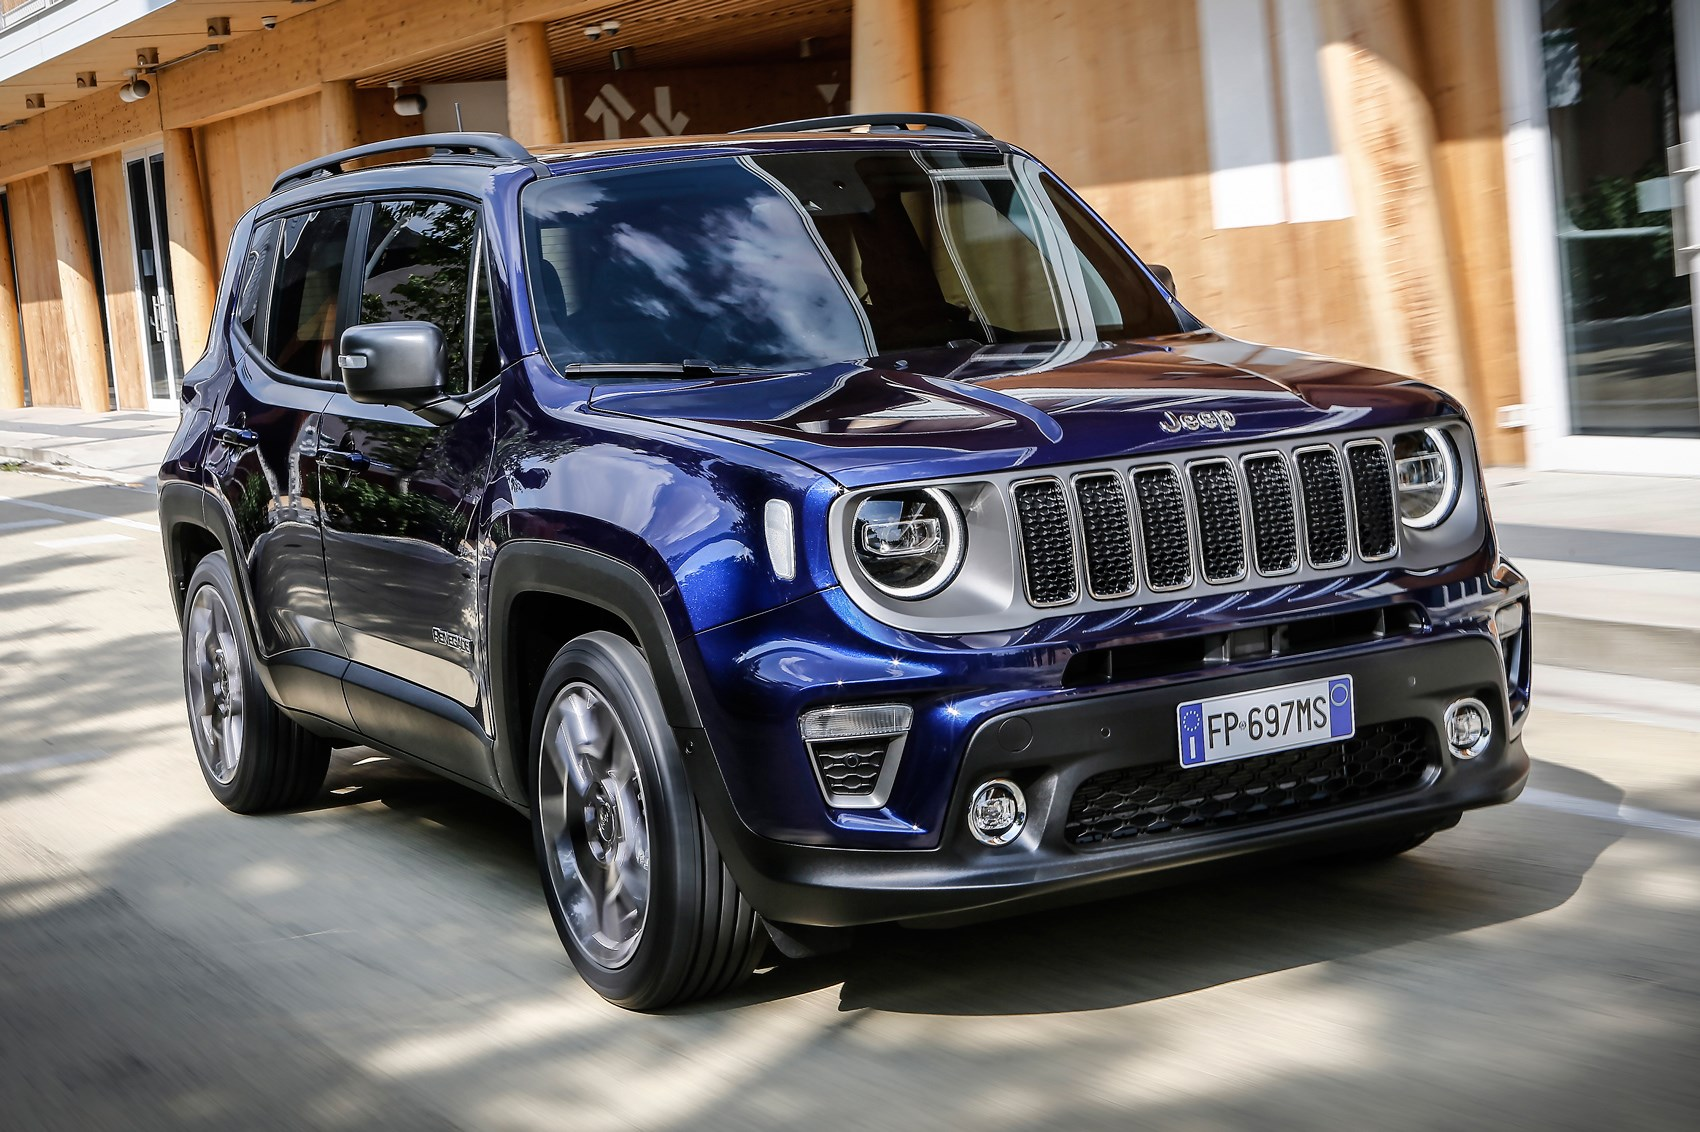 2018 Jeep Renegade: Changes, Design, Features, Price >> Jeep Renegade 2018 Suv Review Chunky Charm Car Magazine